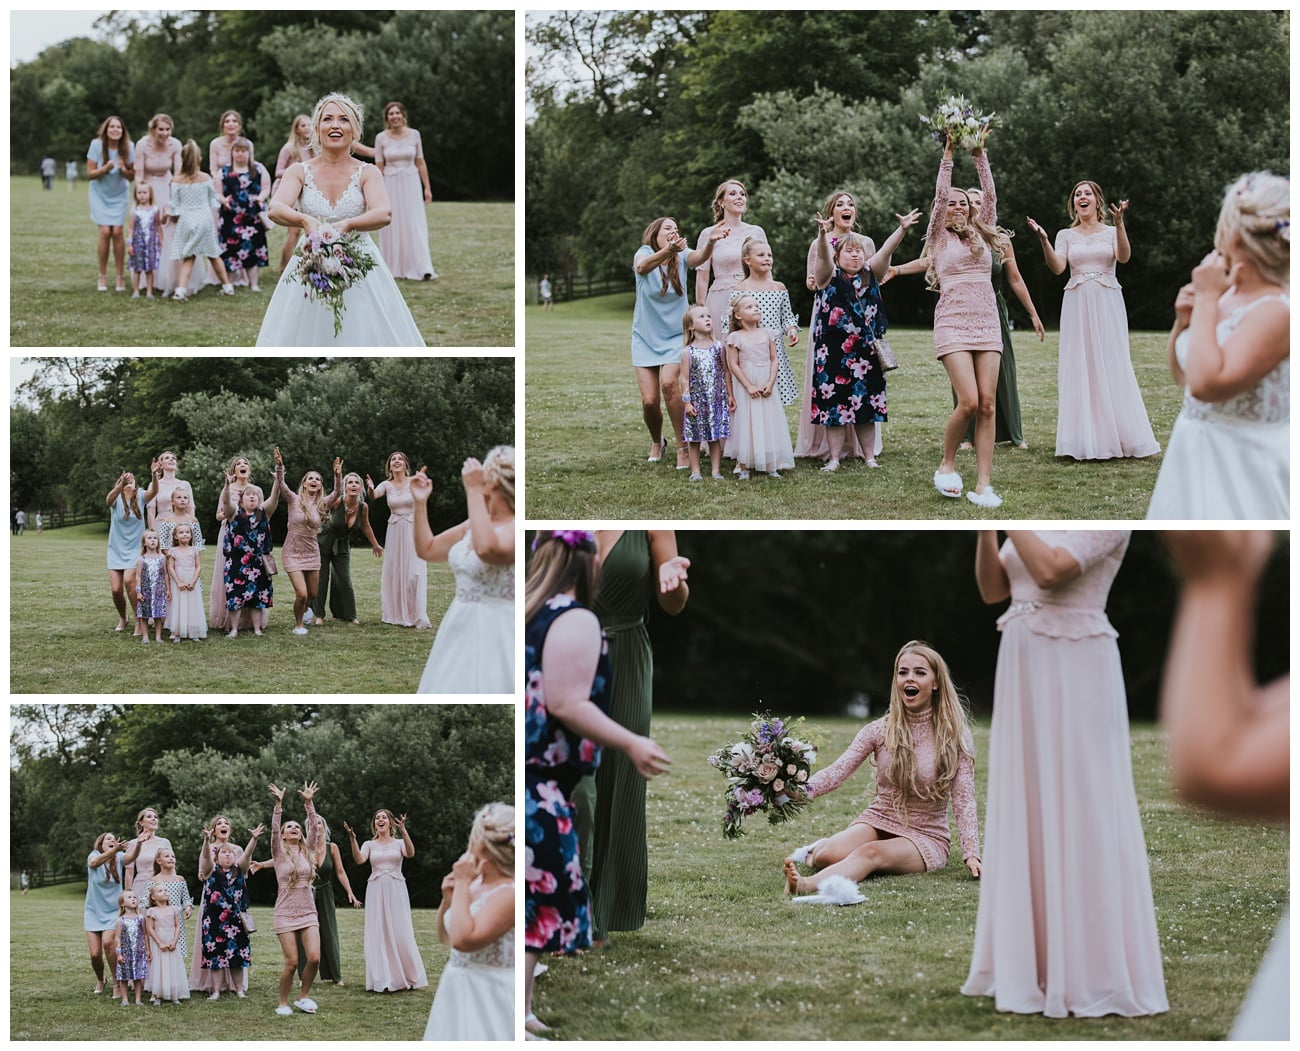 Throwing the bouquet on the field